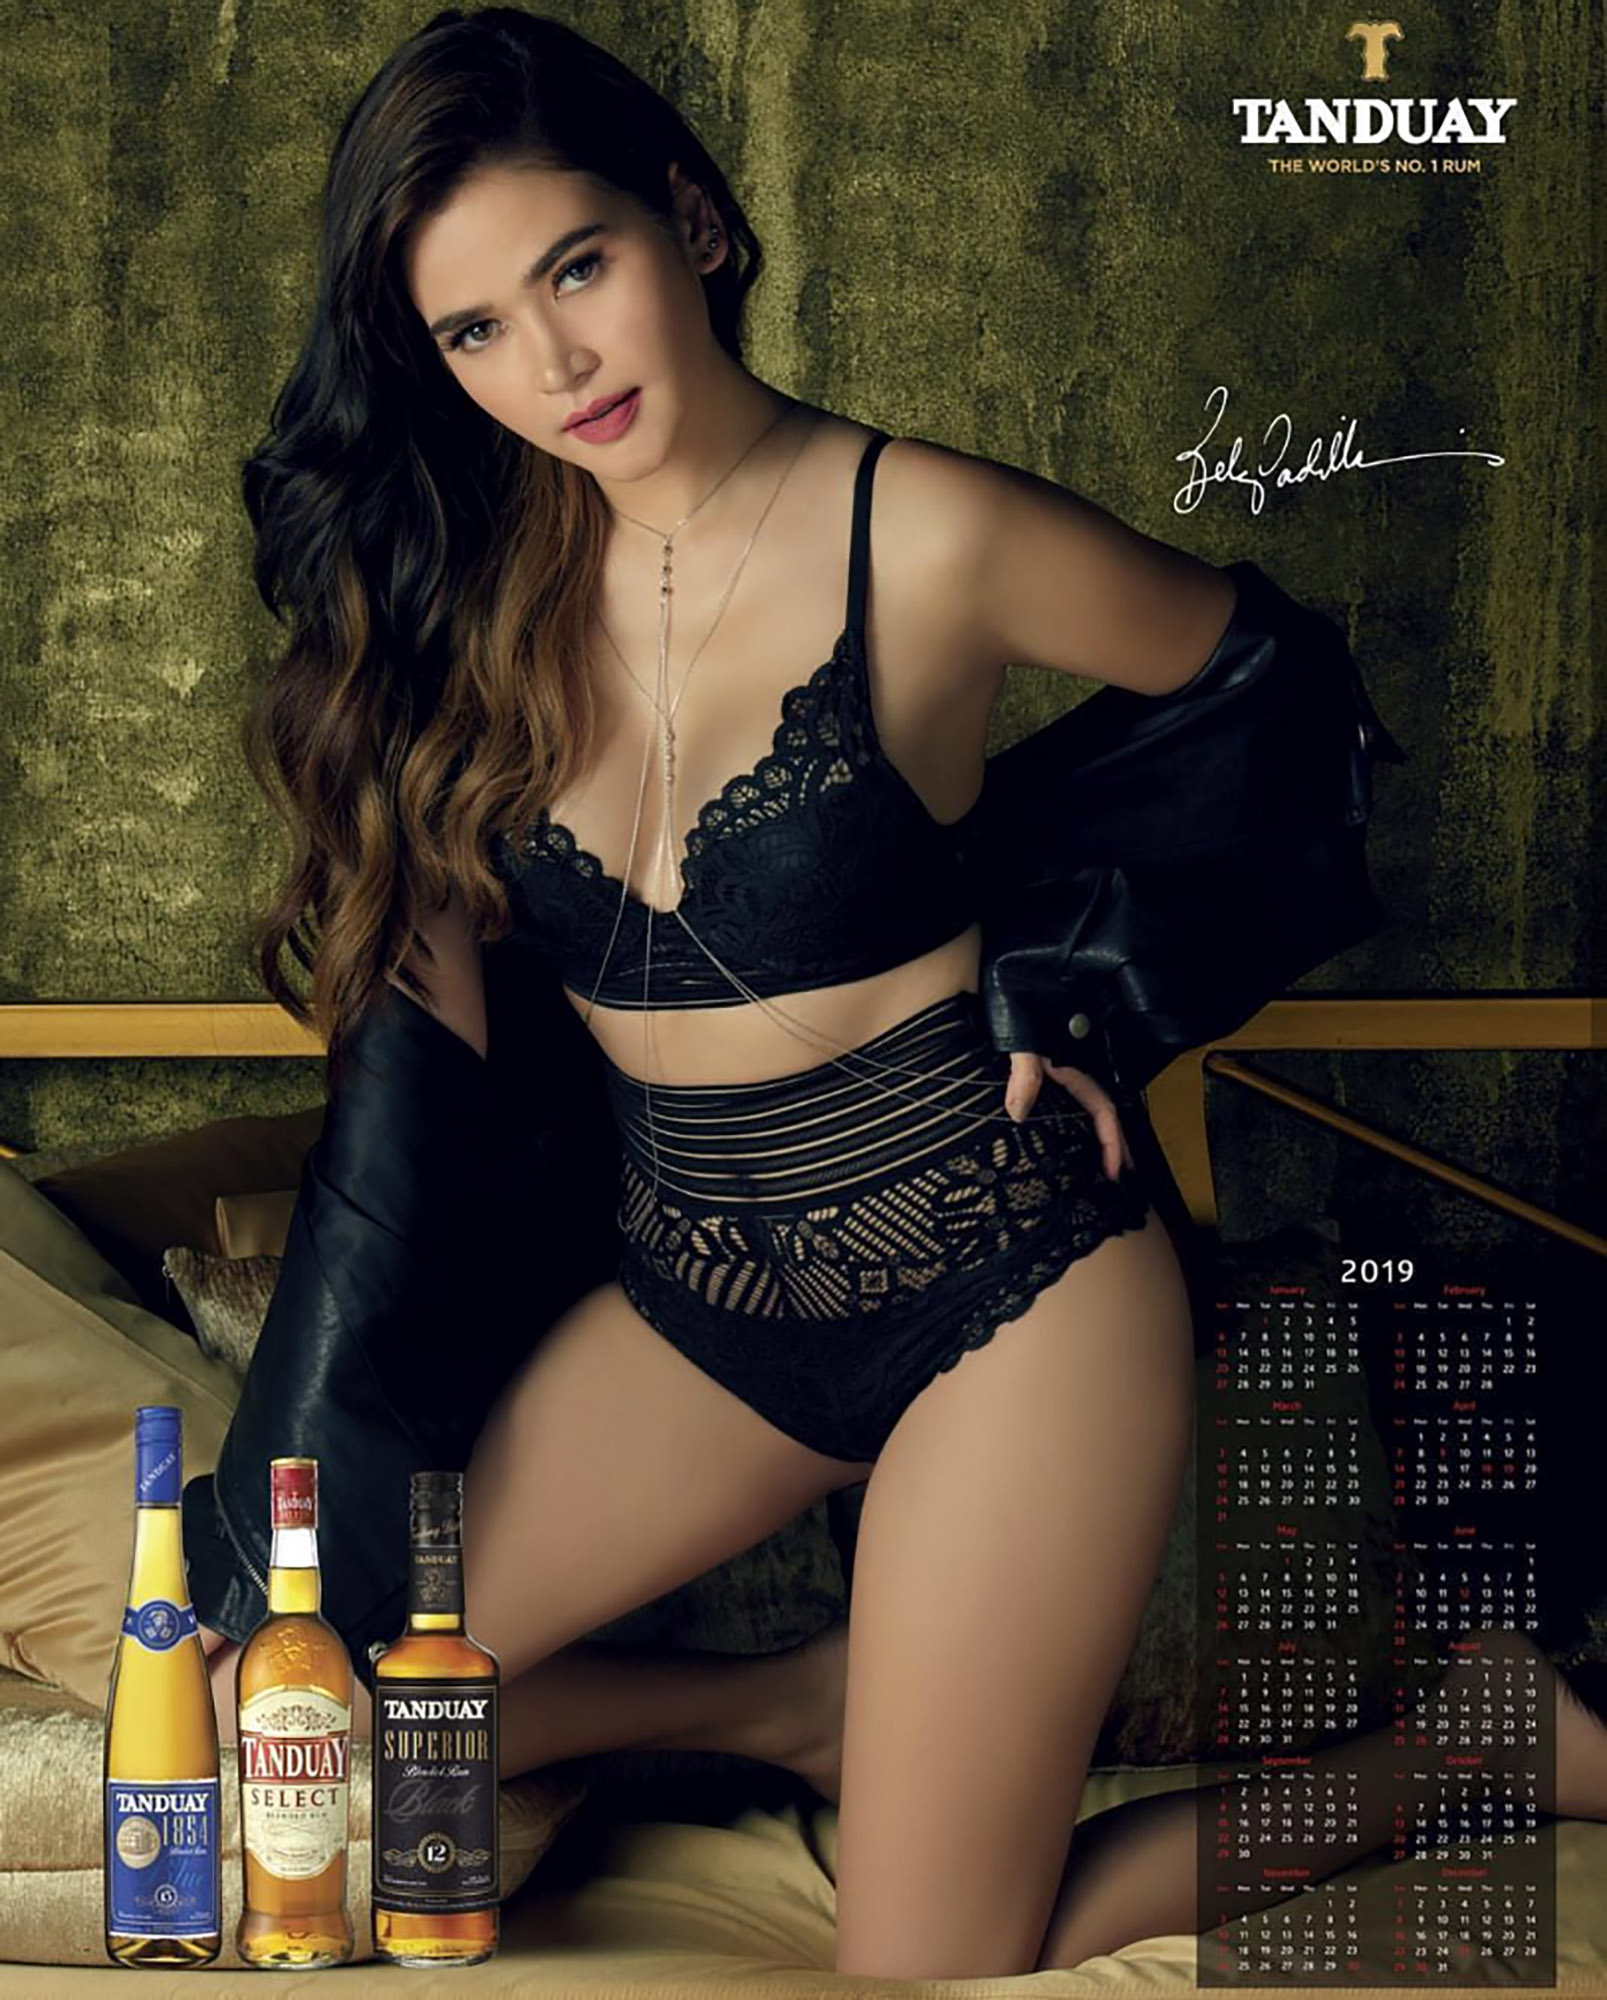 The Tanduay Calendar Girls From 2010-2020 Ranked!   Ao: All Out throughout Tanduay Calendar 2020